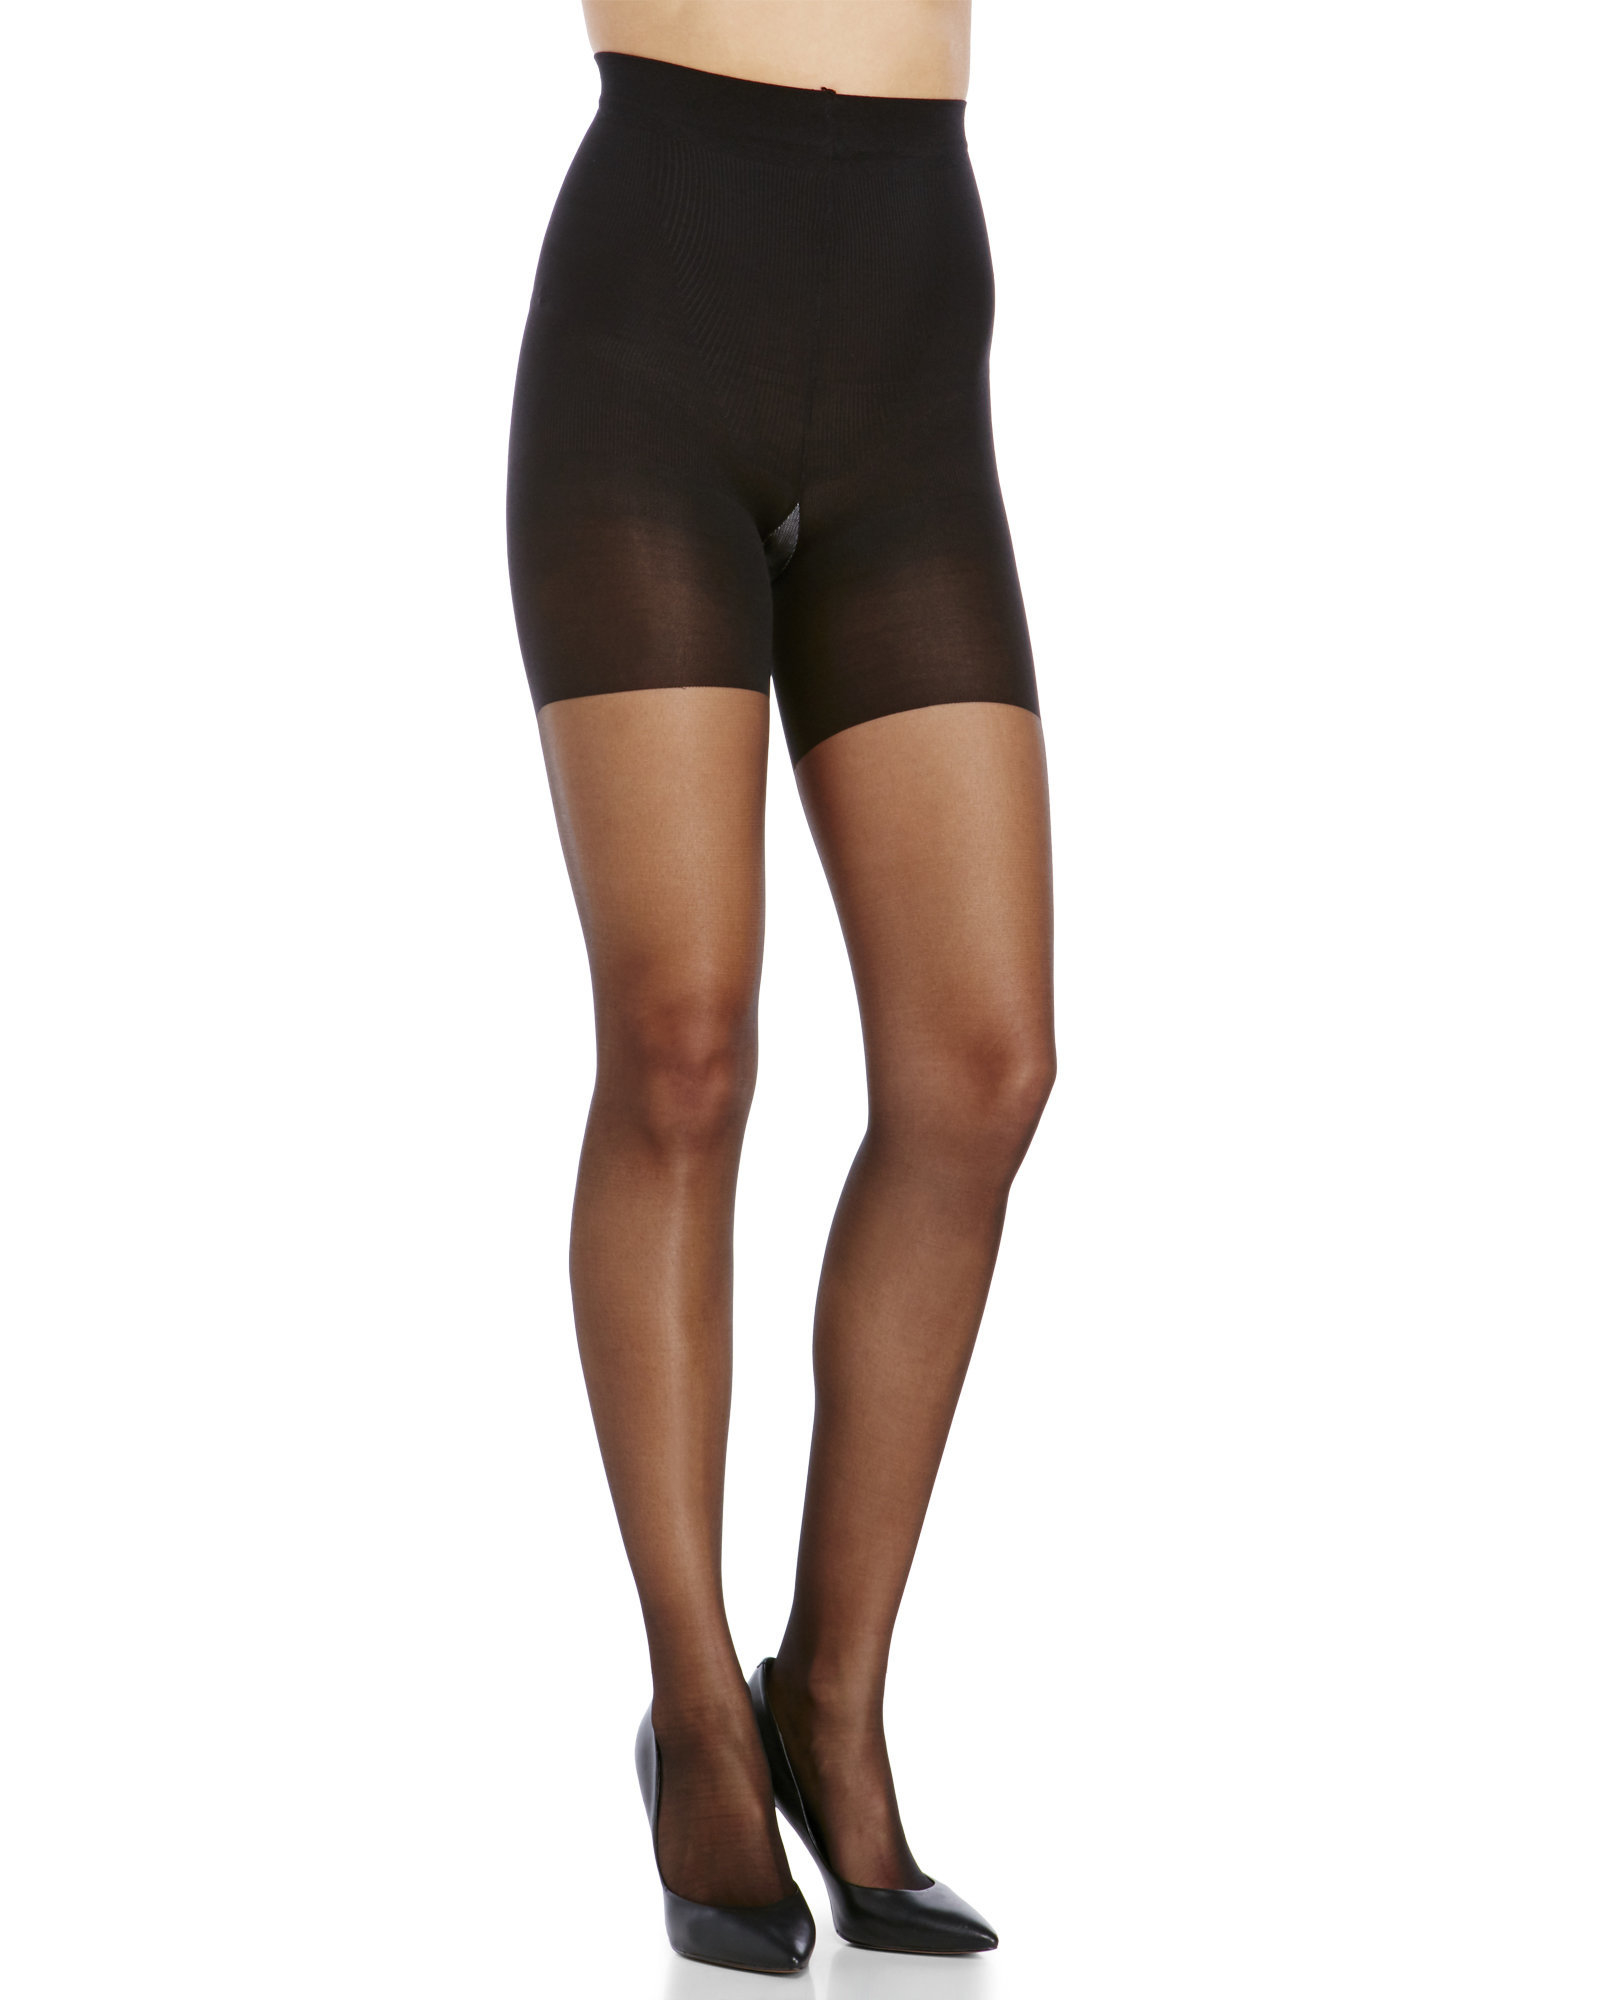 1682748697b Spanx Super Control Top Sheer Tights in Black - Lyst